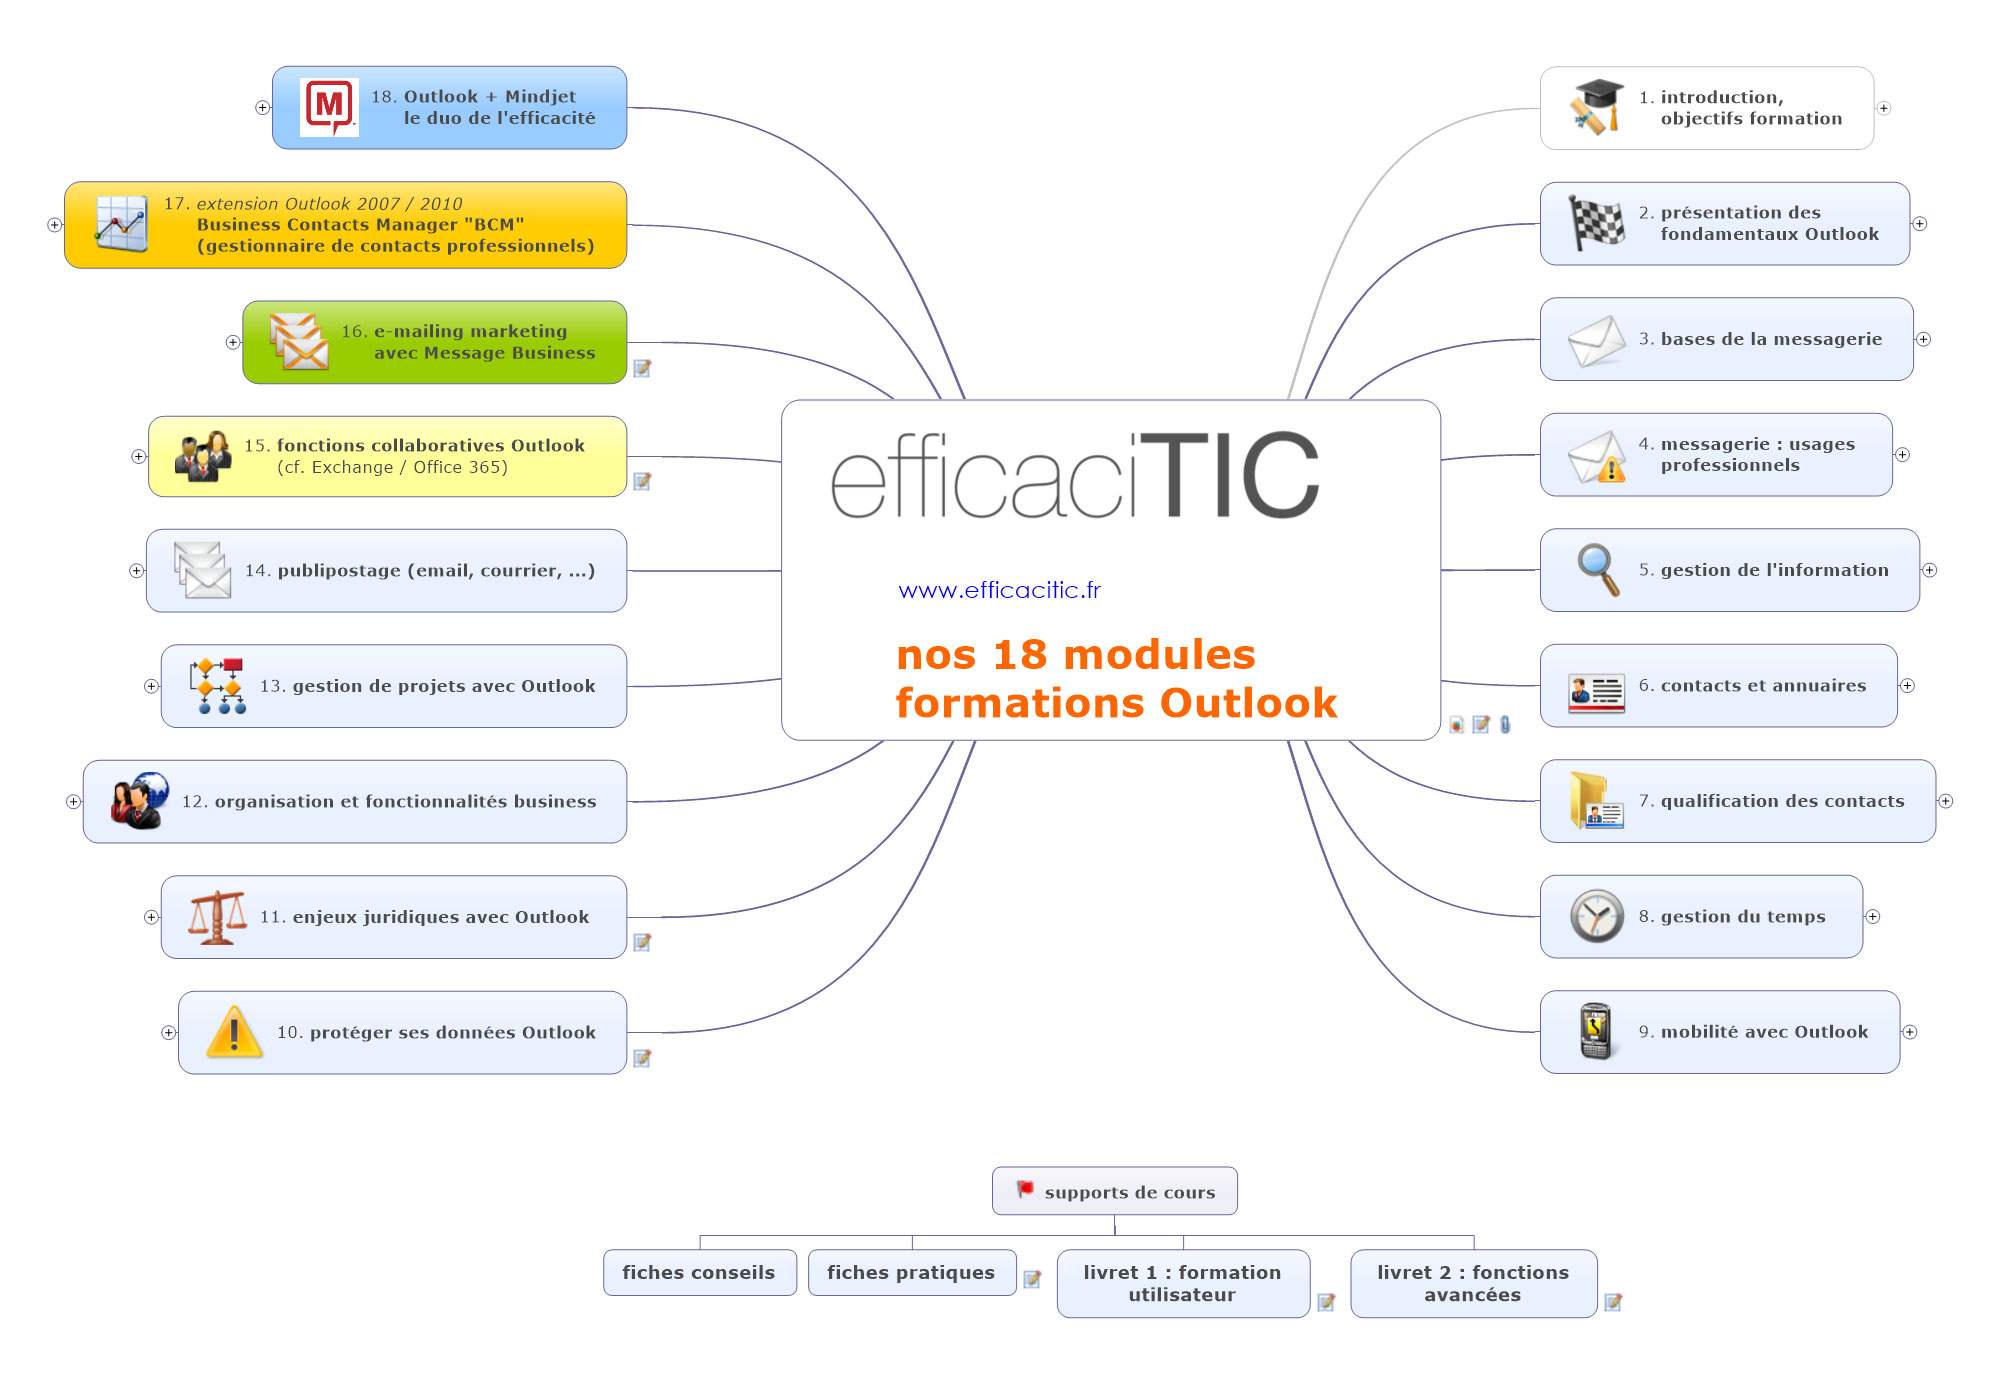 cartographie modules formation Outlook 2013 efficaciTIC